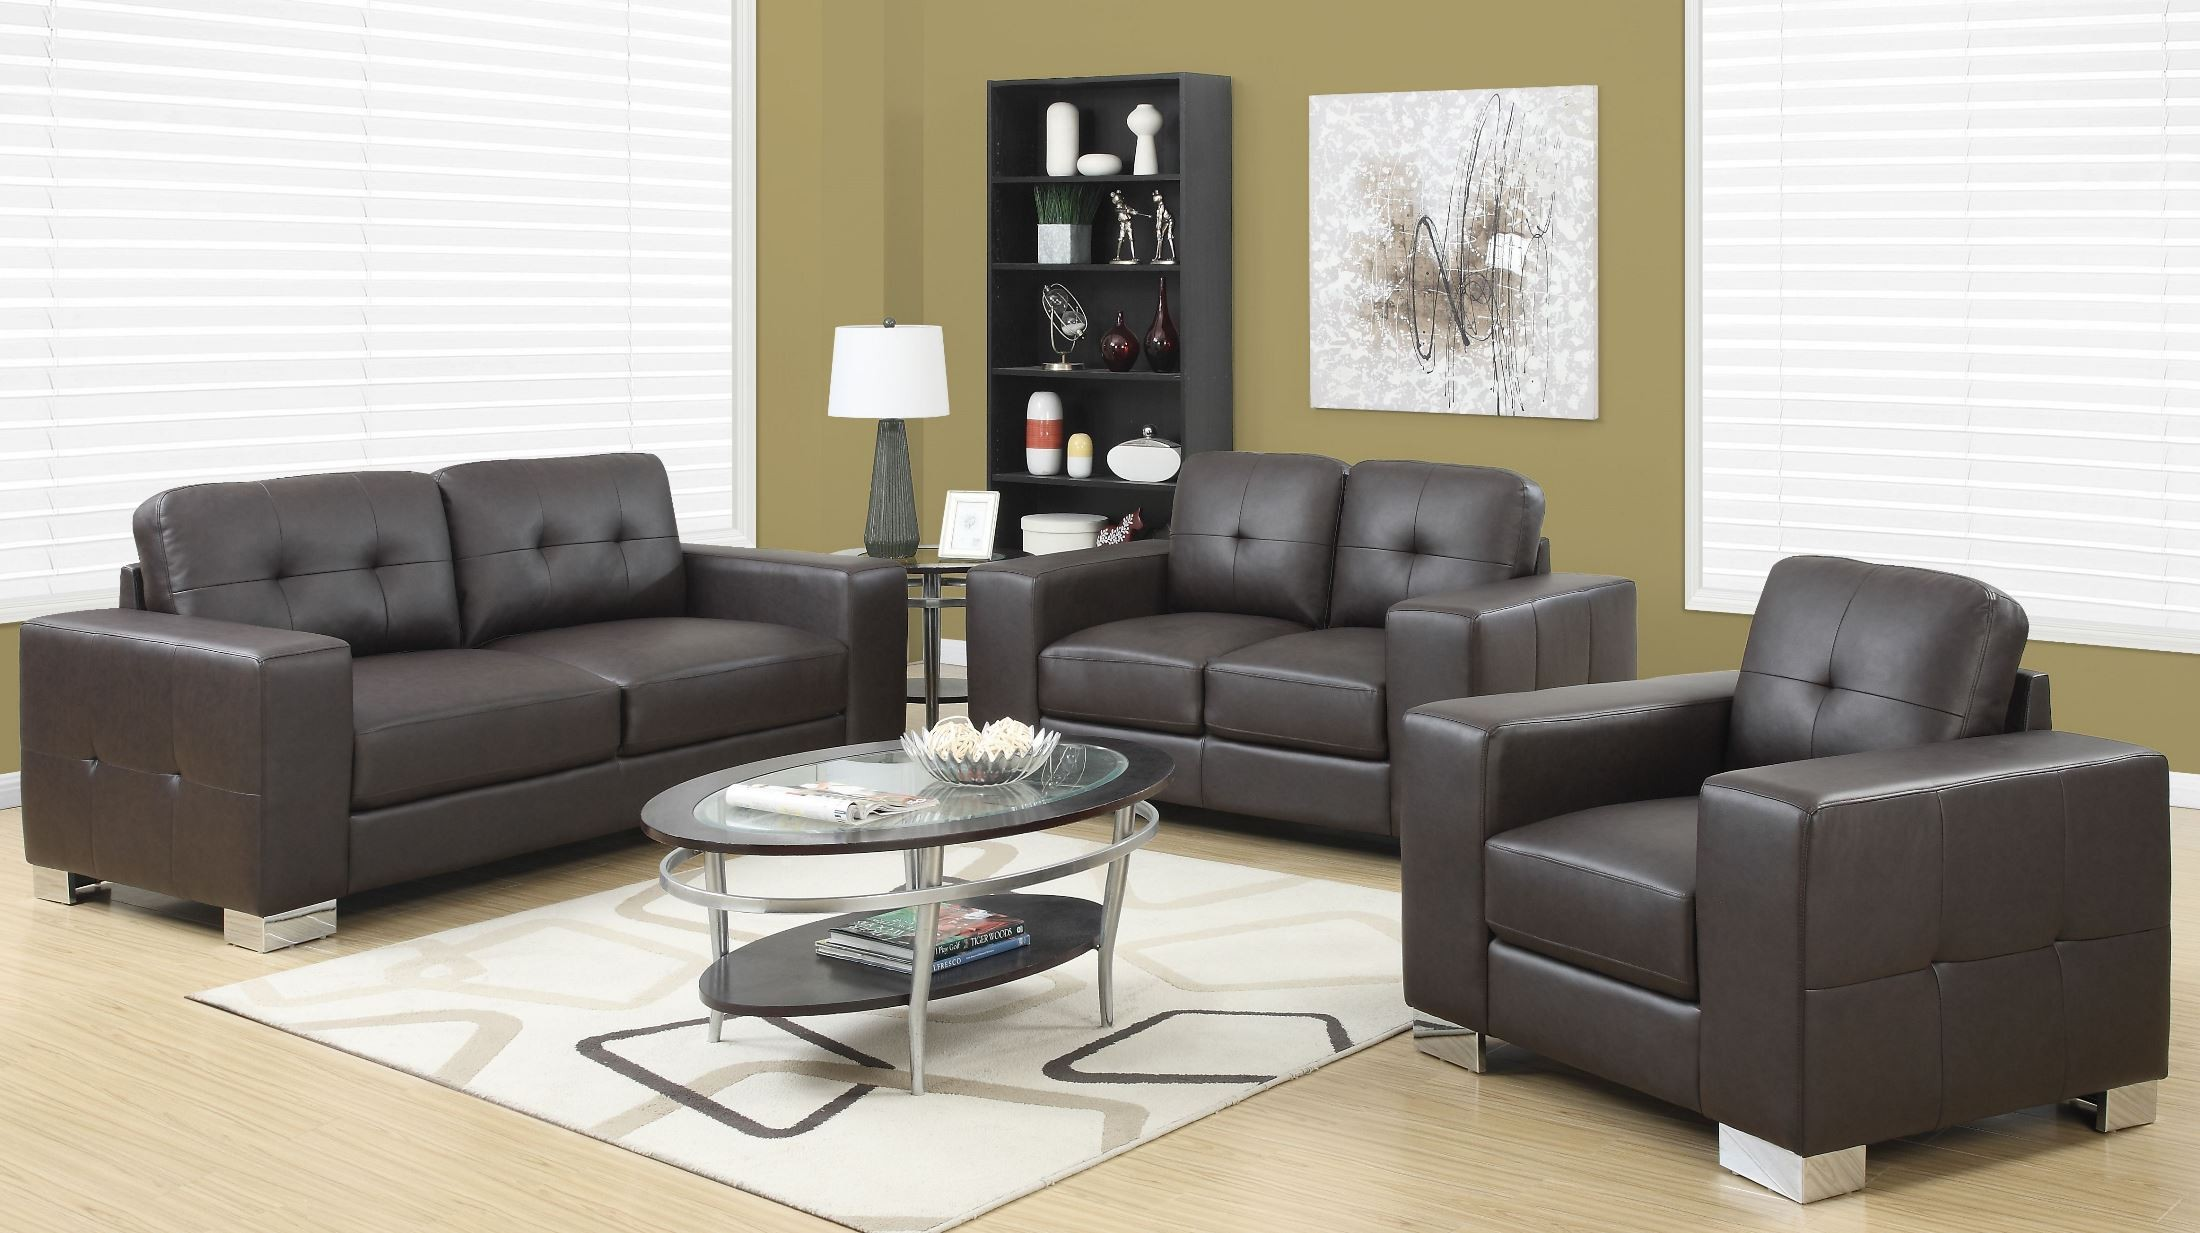 dark brown bonded leather living room set 8223br monarch. Black Bedroom Furniture Sets. Home Design Ideas